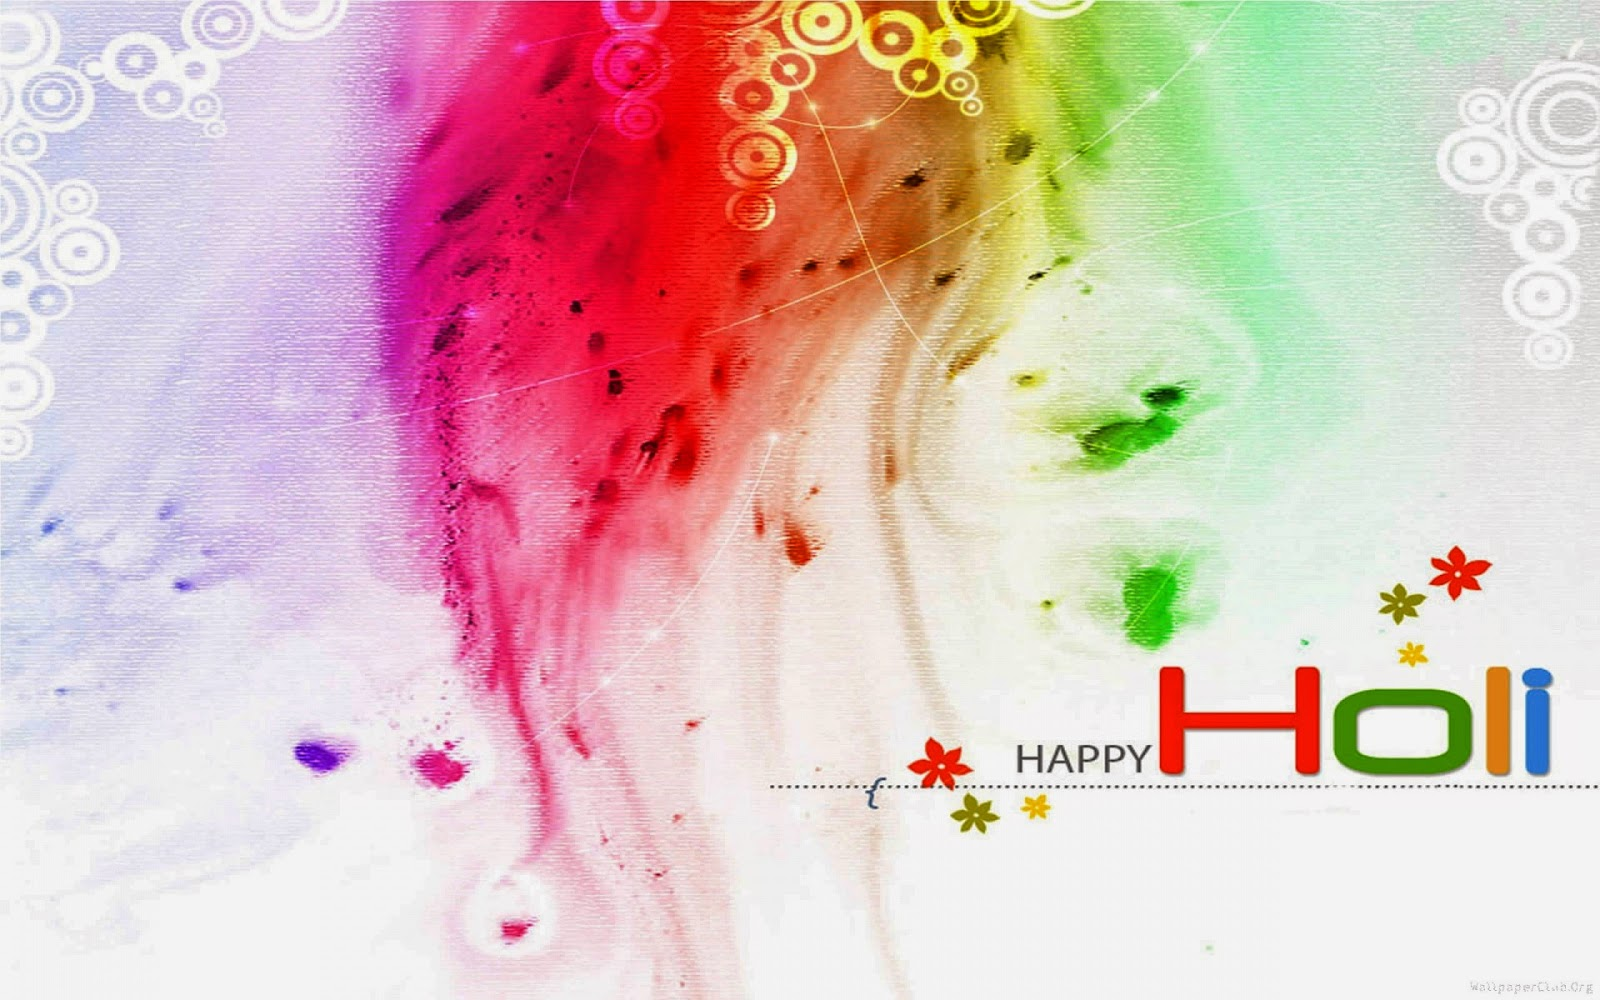 happy holi latest hd images